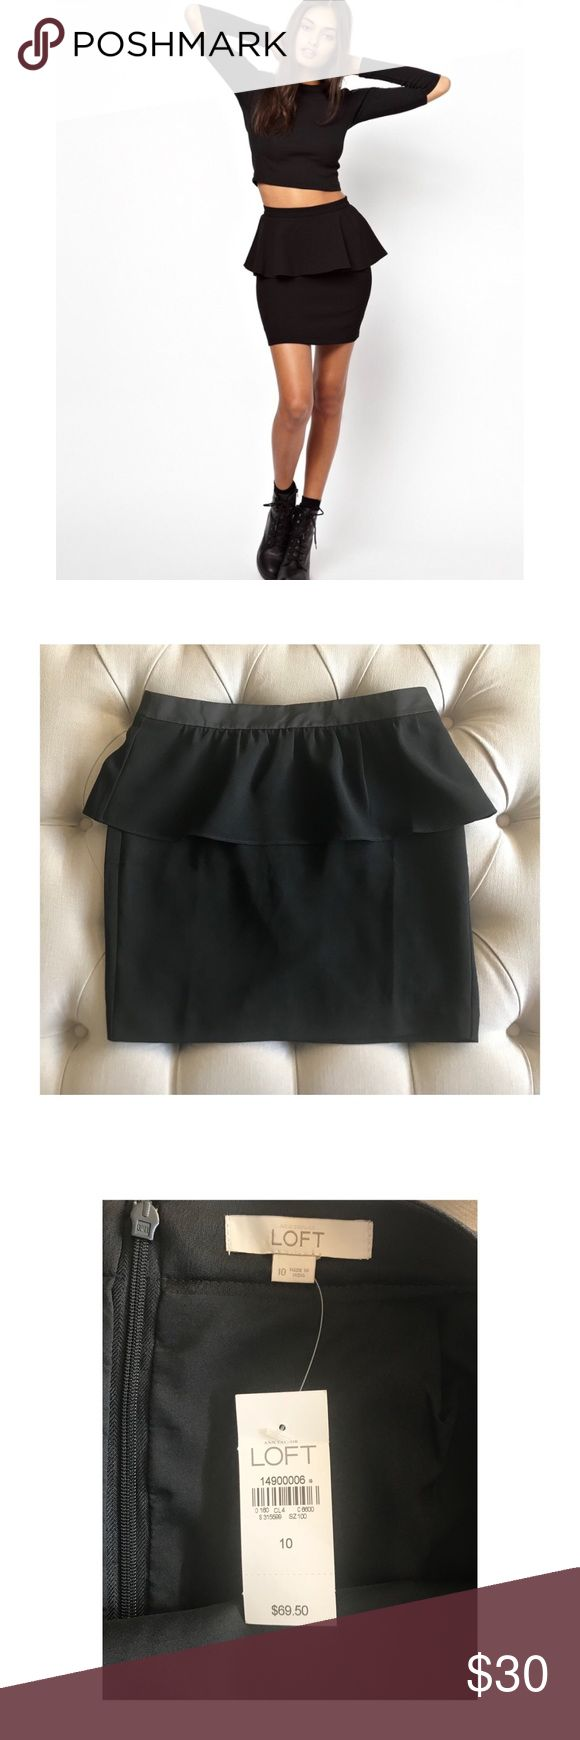 NWT Anne Taylor Loft Black Peplum Skirt NWT Anne Taylor Loft Peplum Skirt Black in Color  Size 10 Polyester Material Back Zipper Detail Great piece to add to your closet! ** in the pics it looks like there's pleating on the Skirt however these are just fold lines ** LOFT Skirts Mini